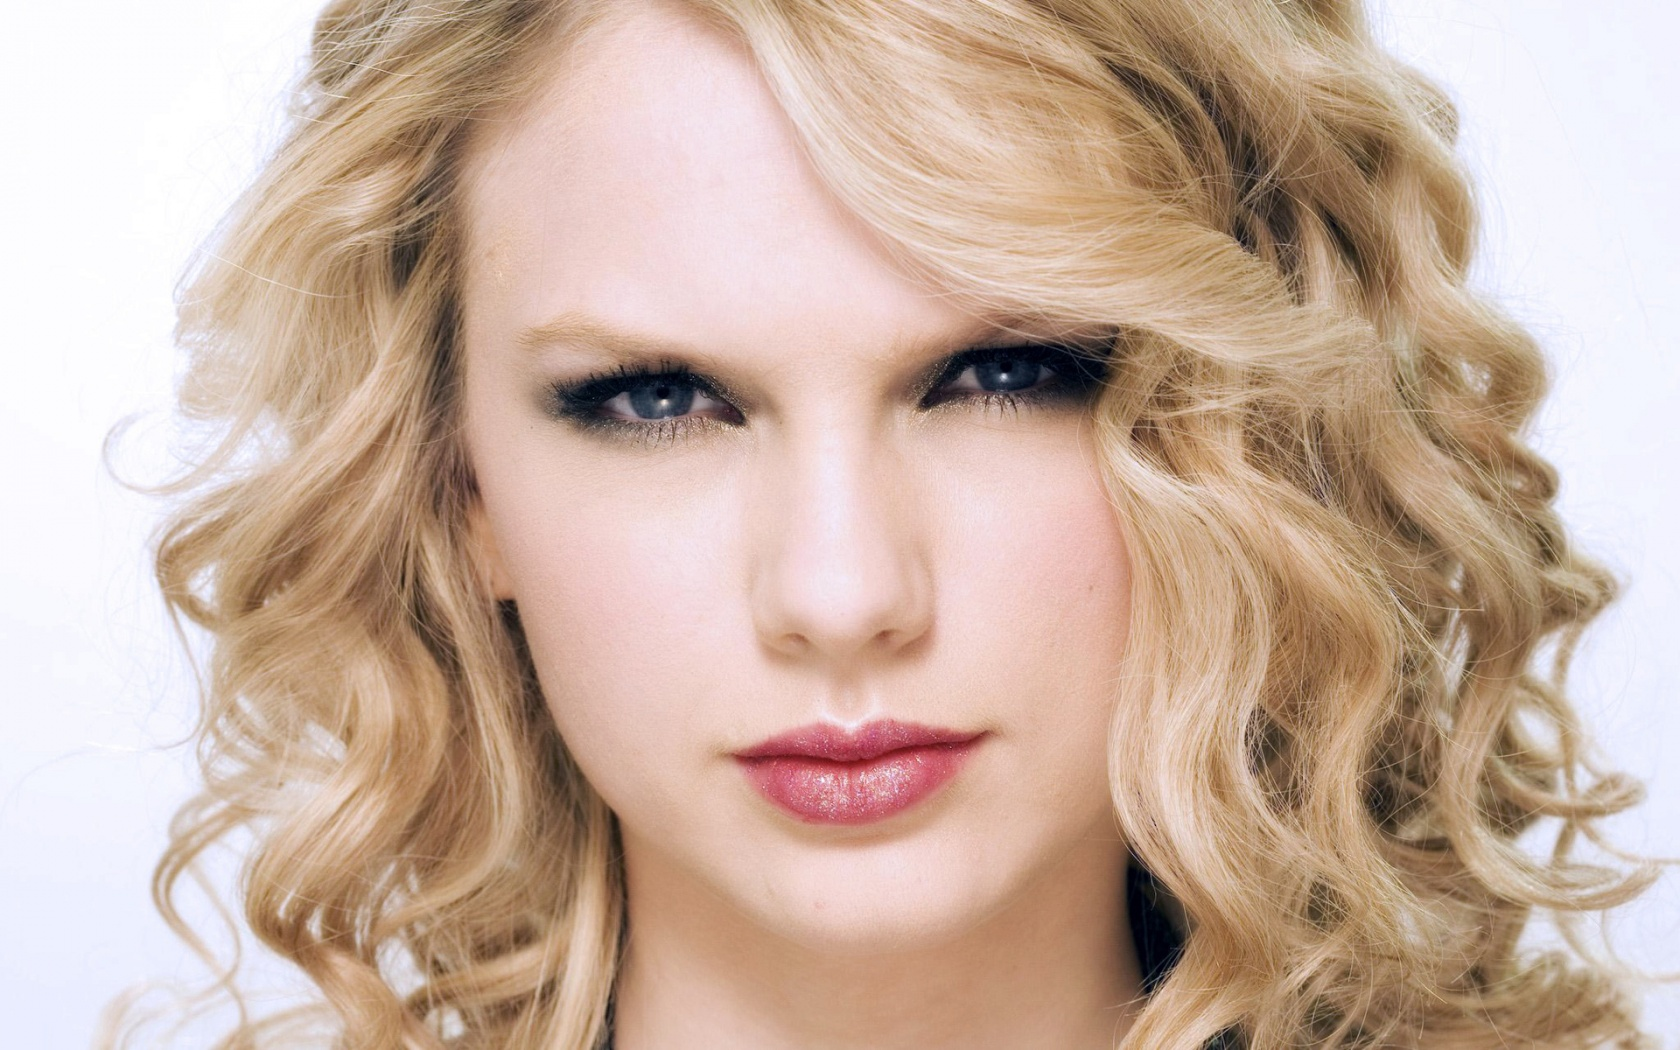 amazing taylor - Taylor Swift Wallpaper (31467883) - Fanpop Taylor Swift